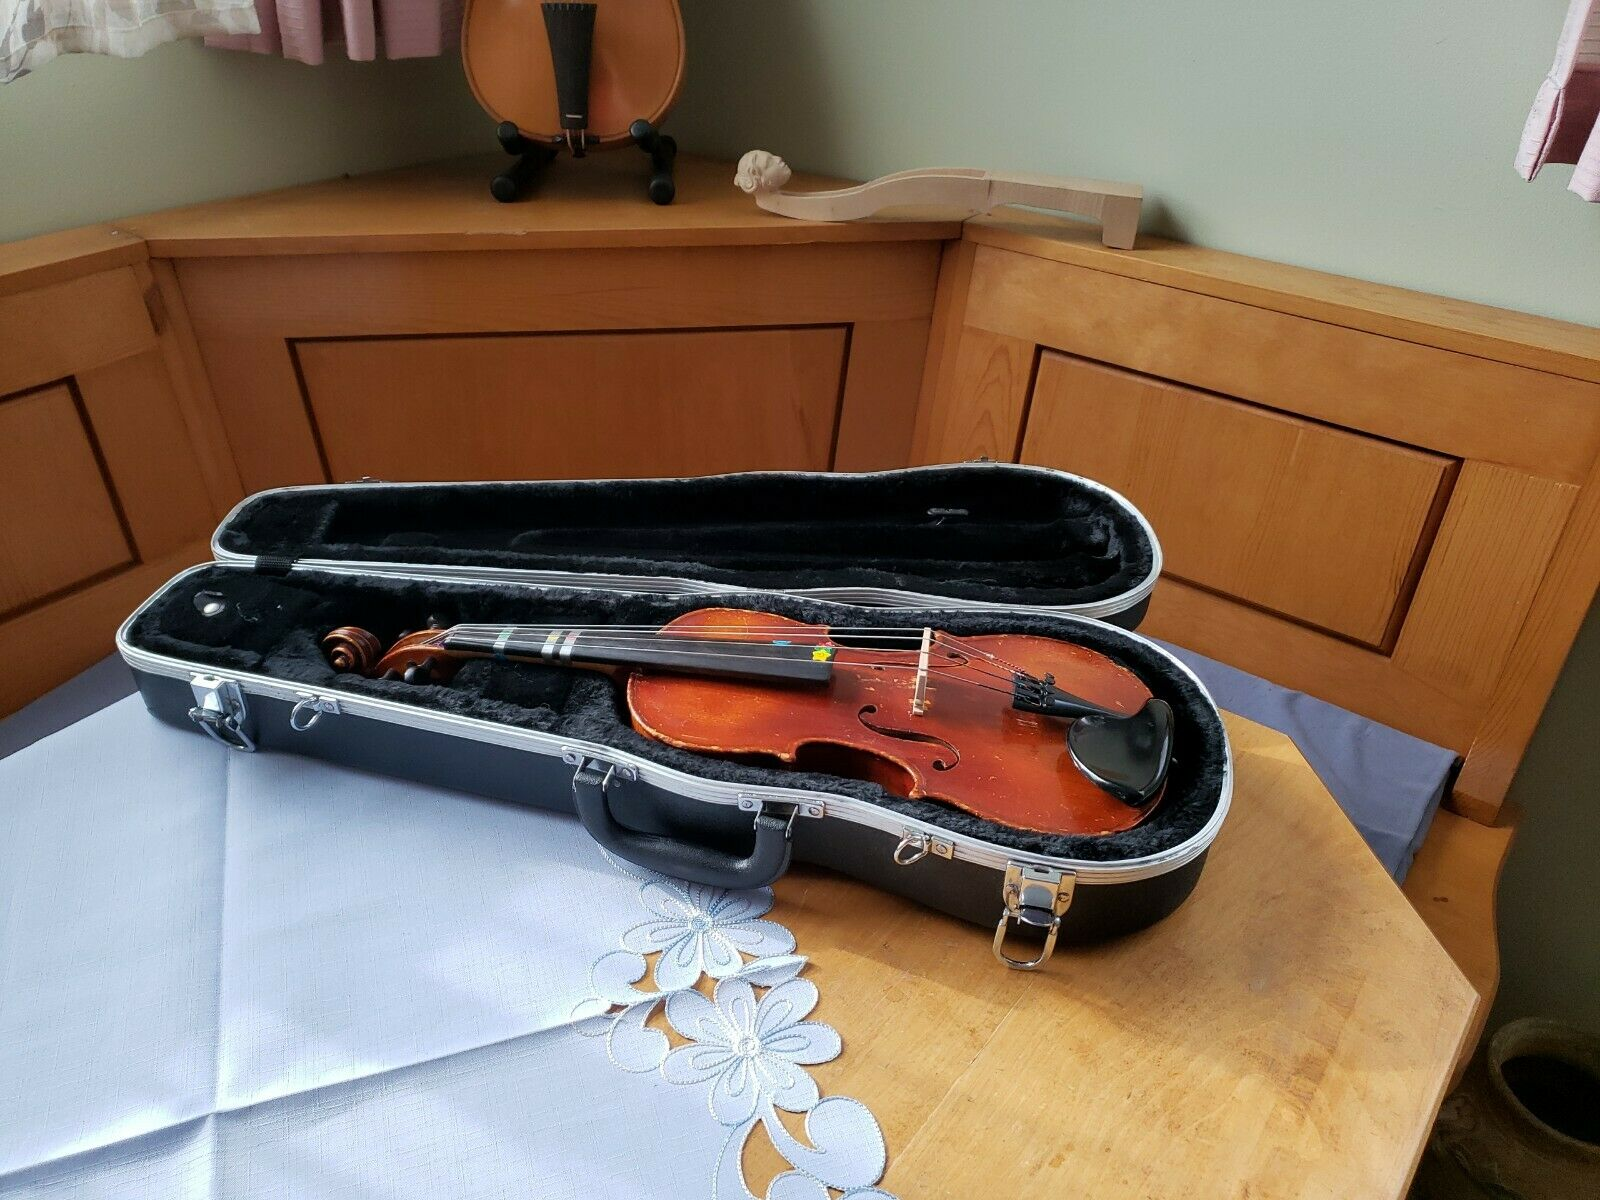 12 Inch Manfred H. Reinl Viola B2901 And New Bridge, For Repair Or Parts - $29.00